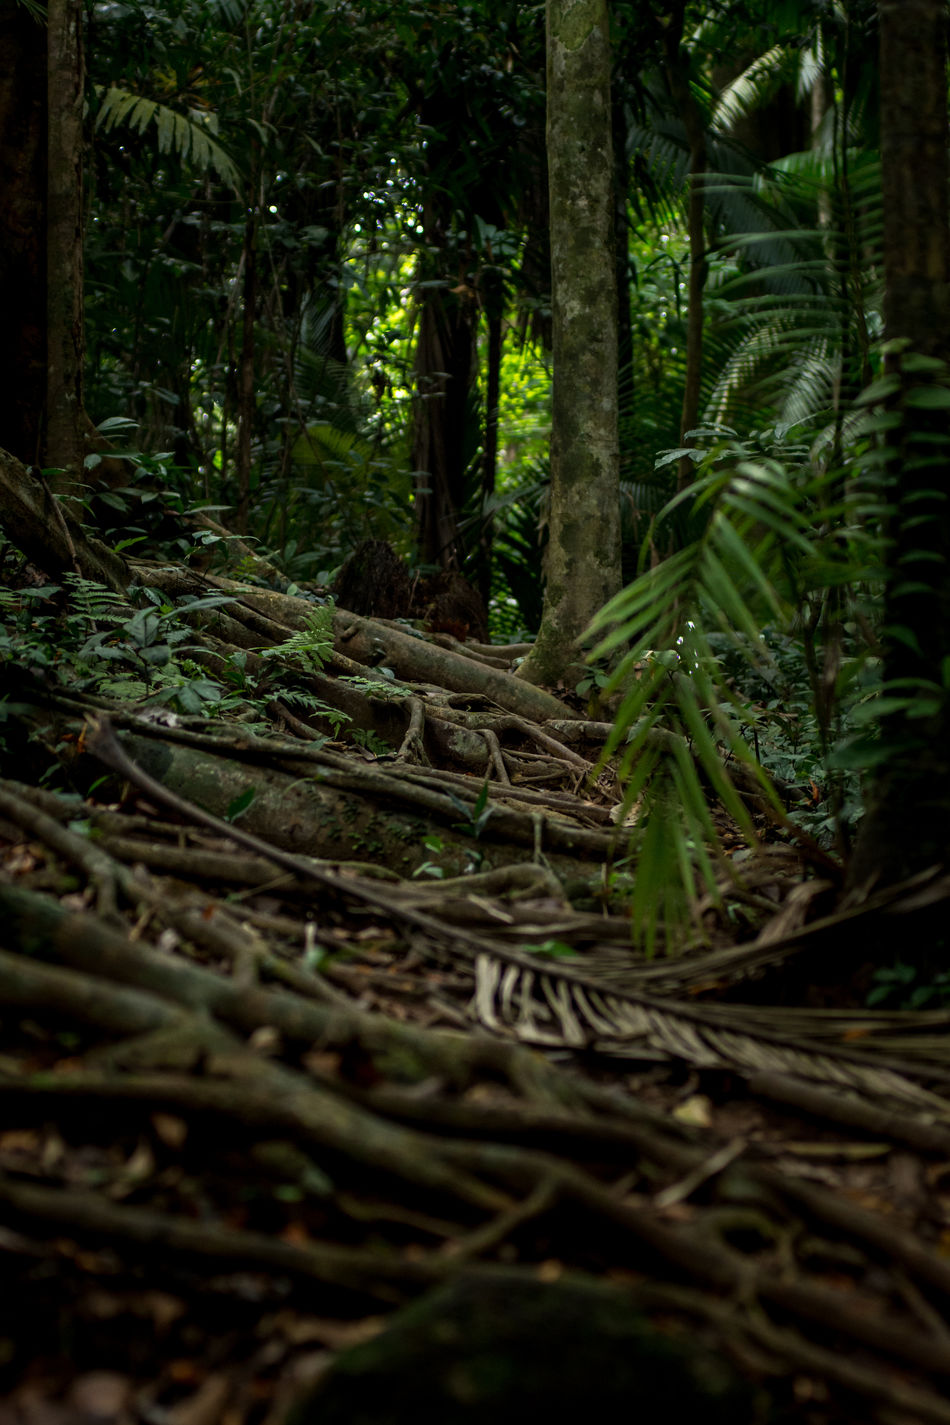 A path heavily covered in tree roots leads through a dense tropical jungle. Adventure Beauty In Nature Dense Direction Exploring Forest Green Growth Jungle Leaves Lost Nature No People Outdoors Path Rain Forest Roots Route Tioman Tranquility Tree Tree Trunk Vegitation Way Forward